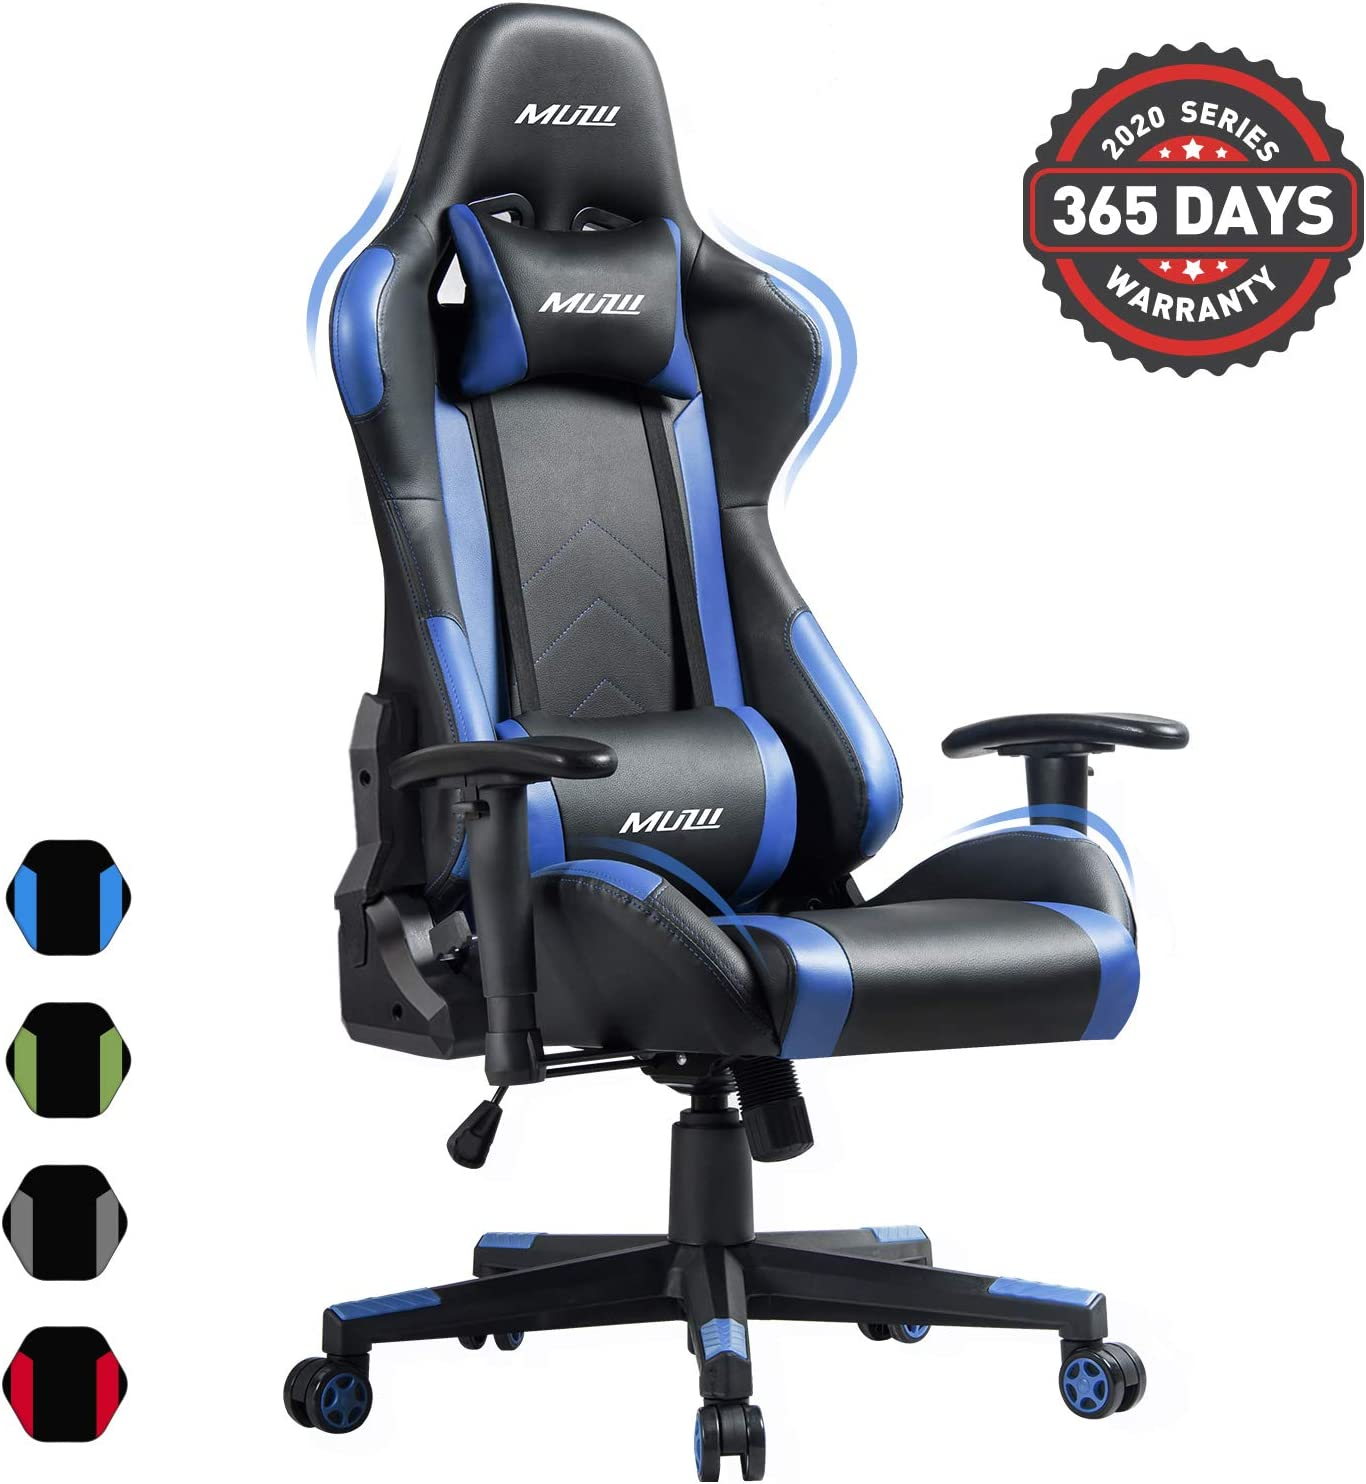 Muzii PC Gaming Chair for Pro,4-Color Choice PU Leather Racing Style Ergonomic Adjustable Computer Chair for Office or Game with Headrest and Lumbar Pillow for Adults and Teens (Blue)